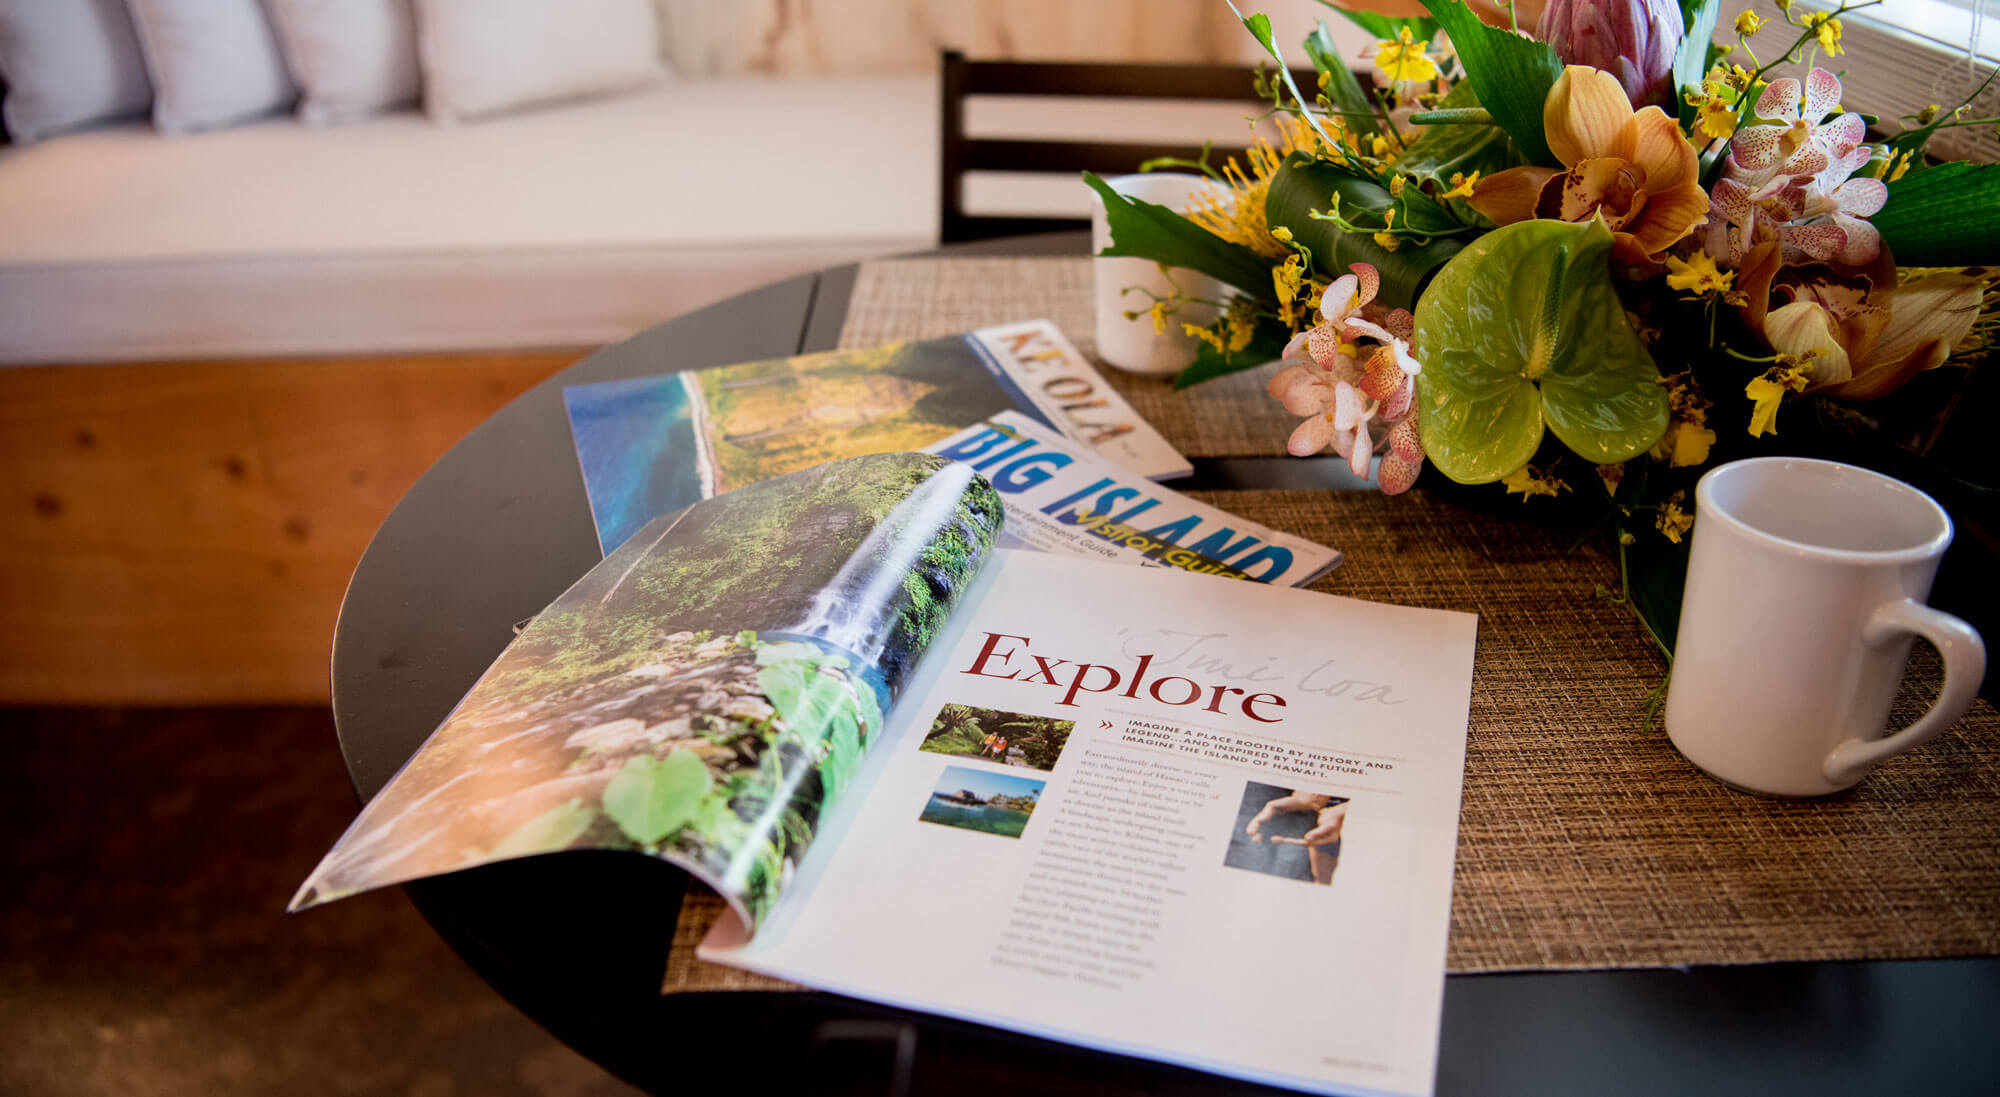 table with magazines and flower center piece